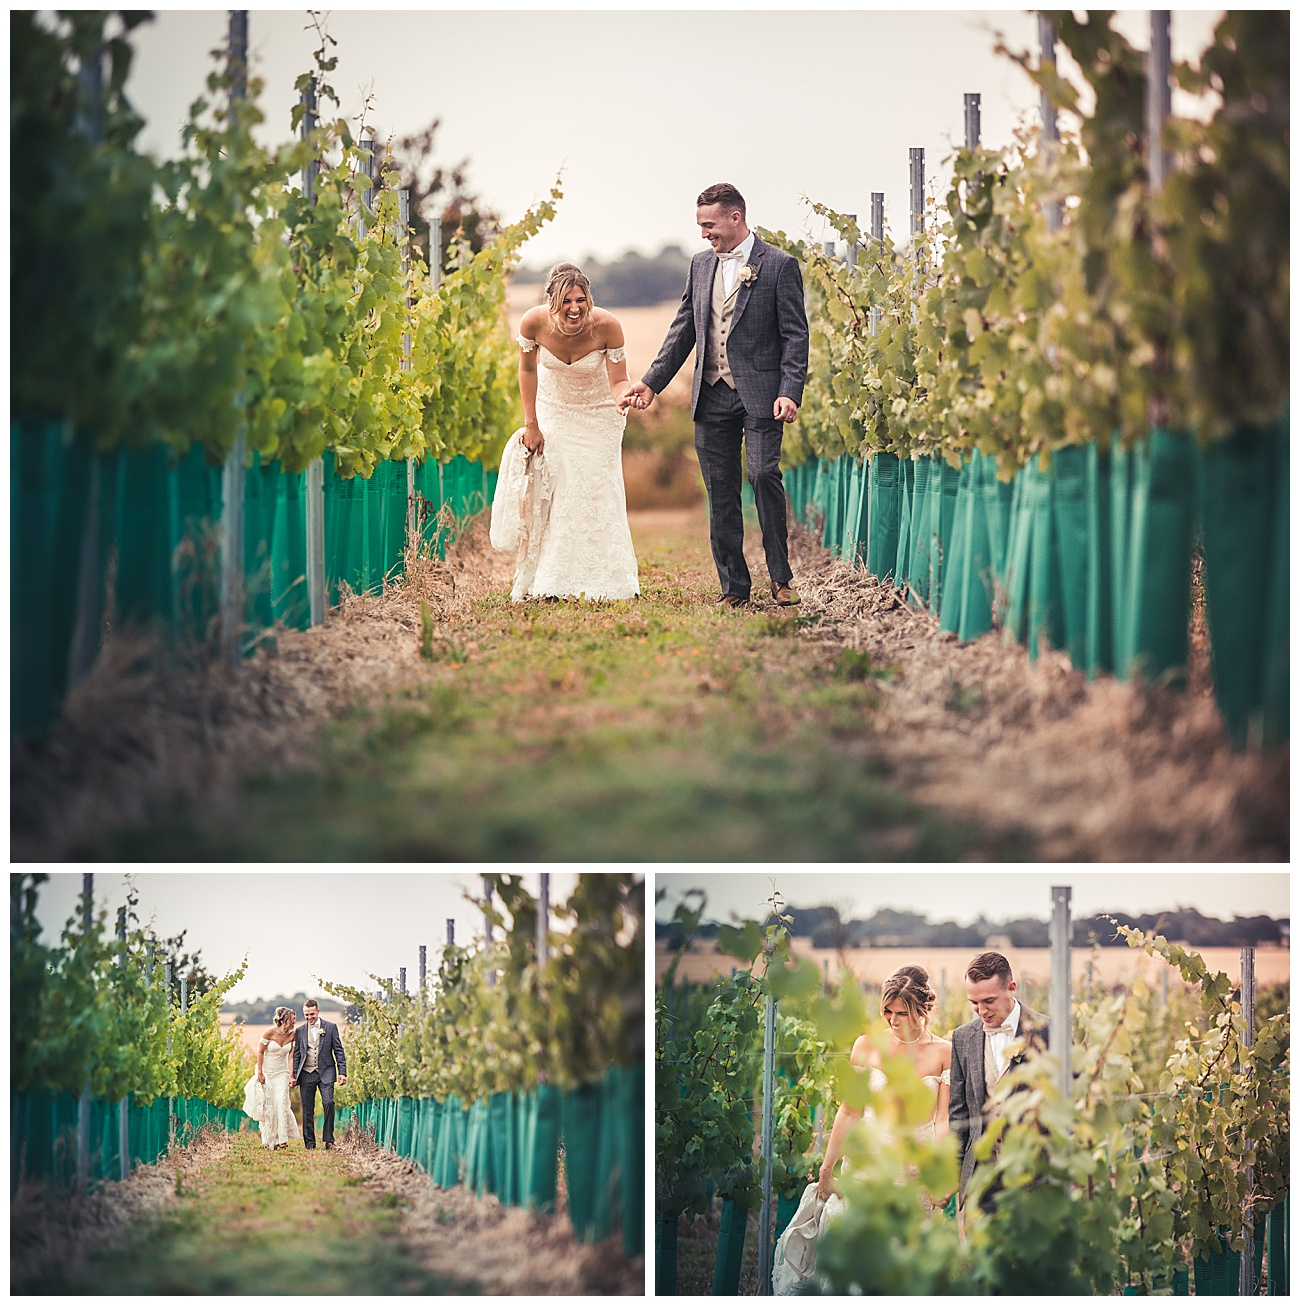 The bride and groom laugh and walk through the vineyards at high house